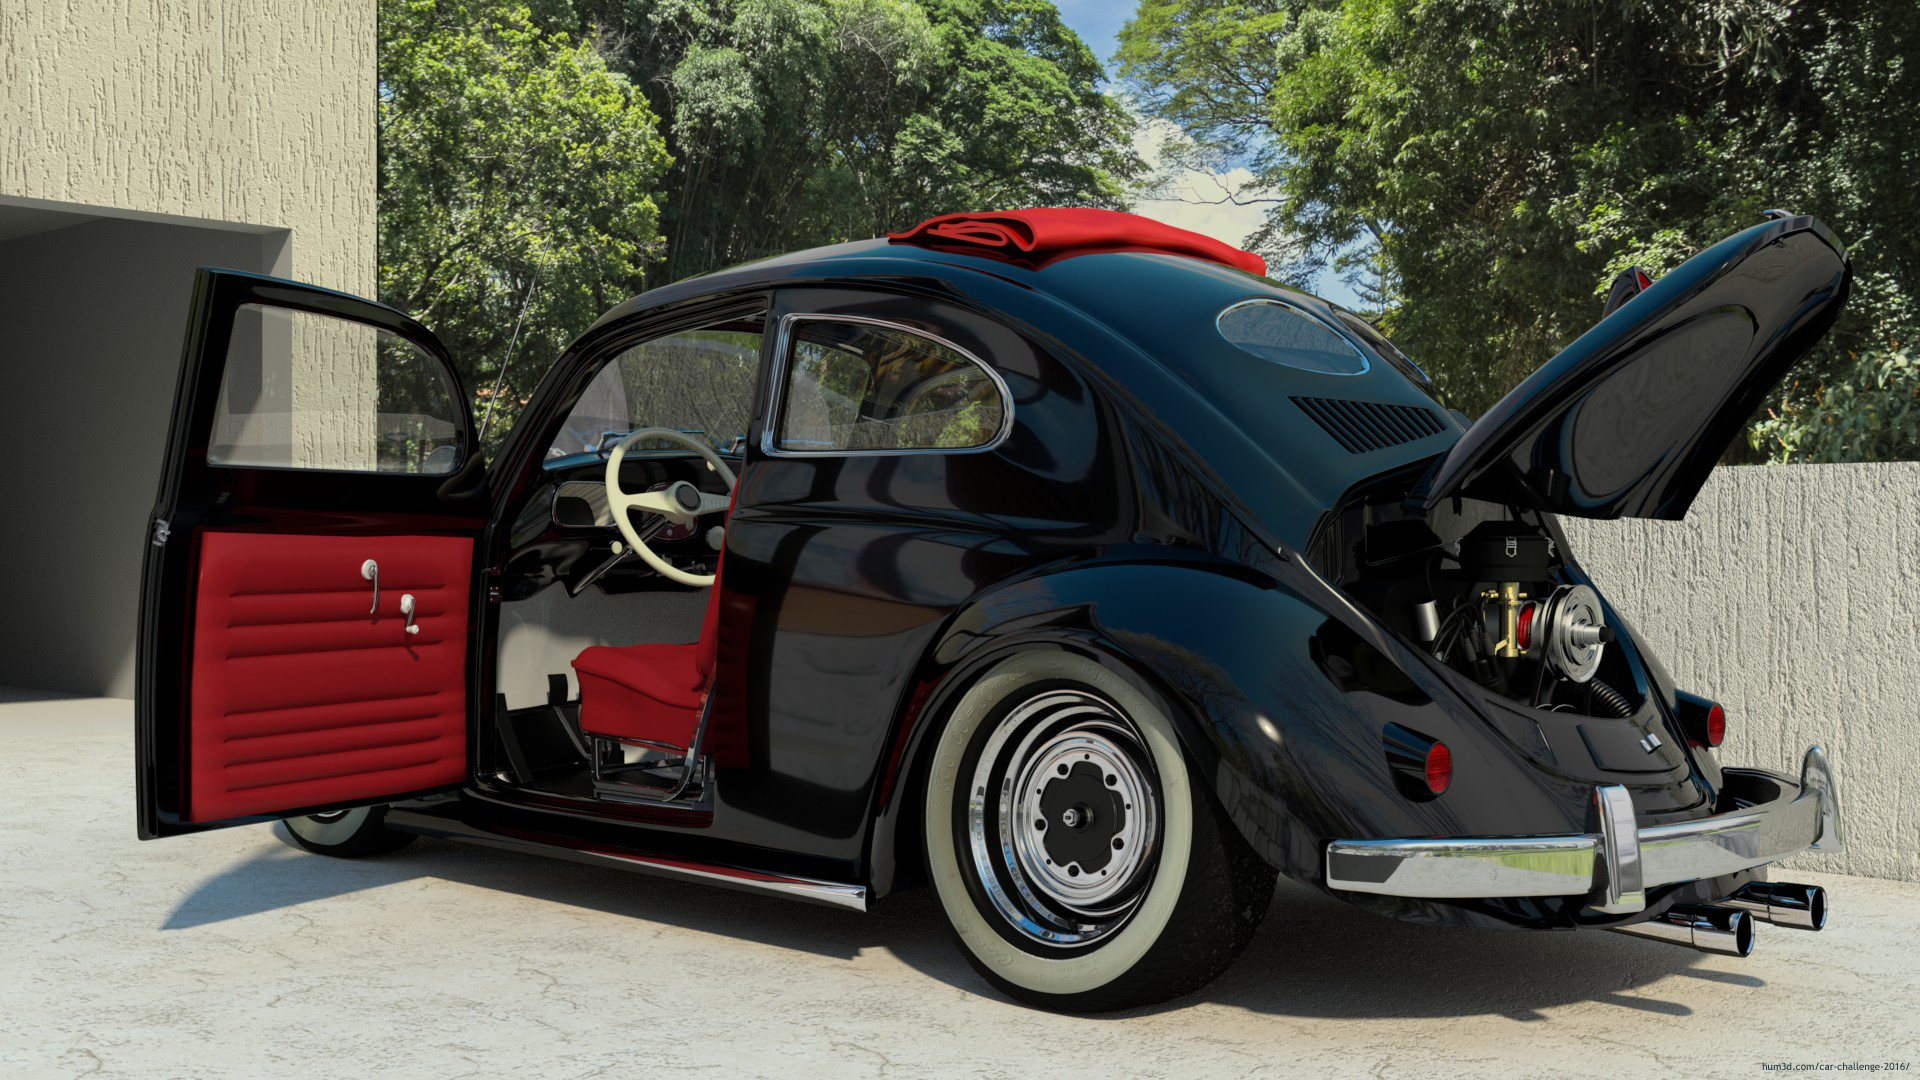 VW 52 Ragtop 3d art